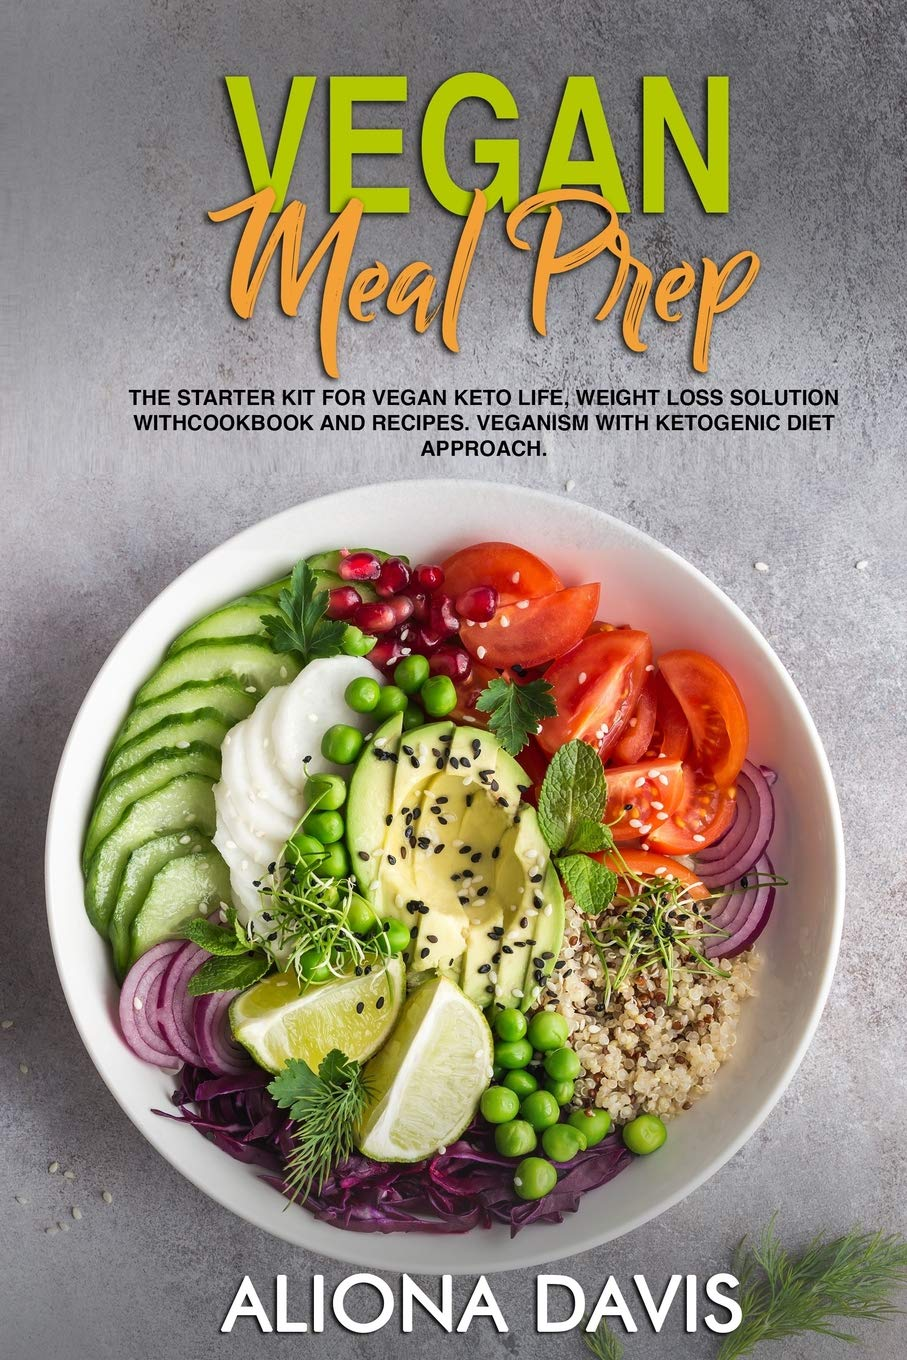 Amazon Com Vegan Meal Prep The Starter Kit For Vegan Keto Life Weight Loss Solution With Cookbook And Recipes Veganism With Ketogenic Diet Approach And Plant Based Diet With Whole Food 9781092725255 Davis